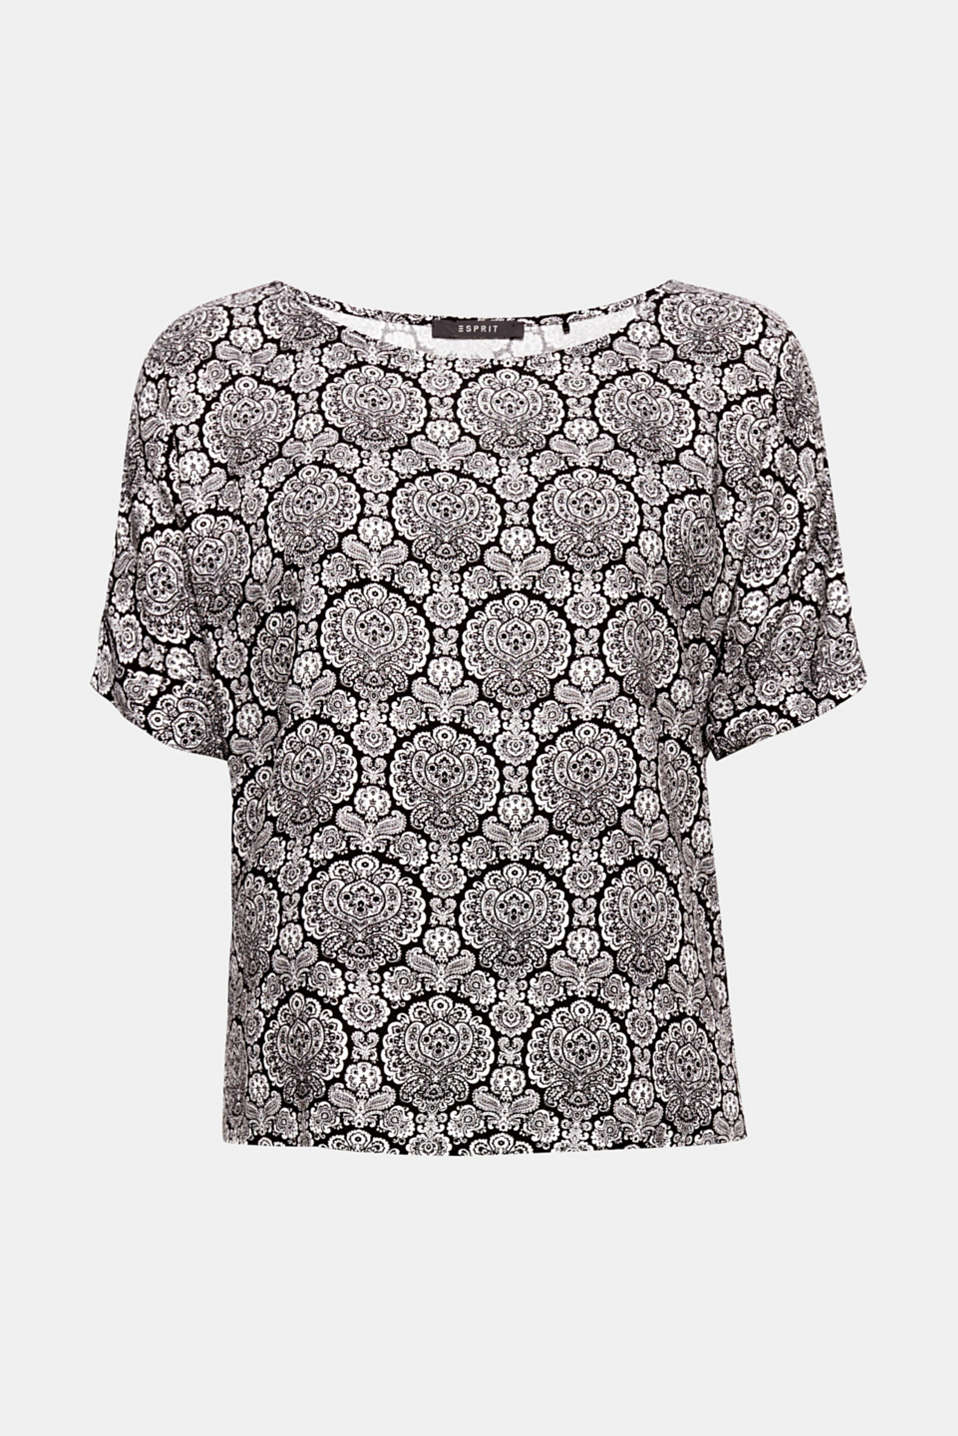 Flowing fabric and the stylish ornamental print give this batwing blouse its special charm!